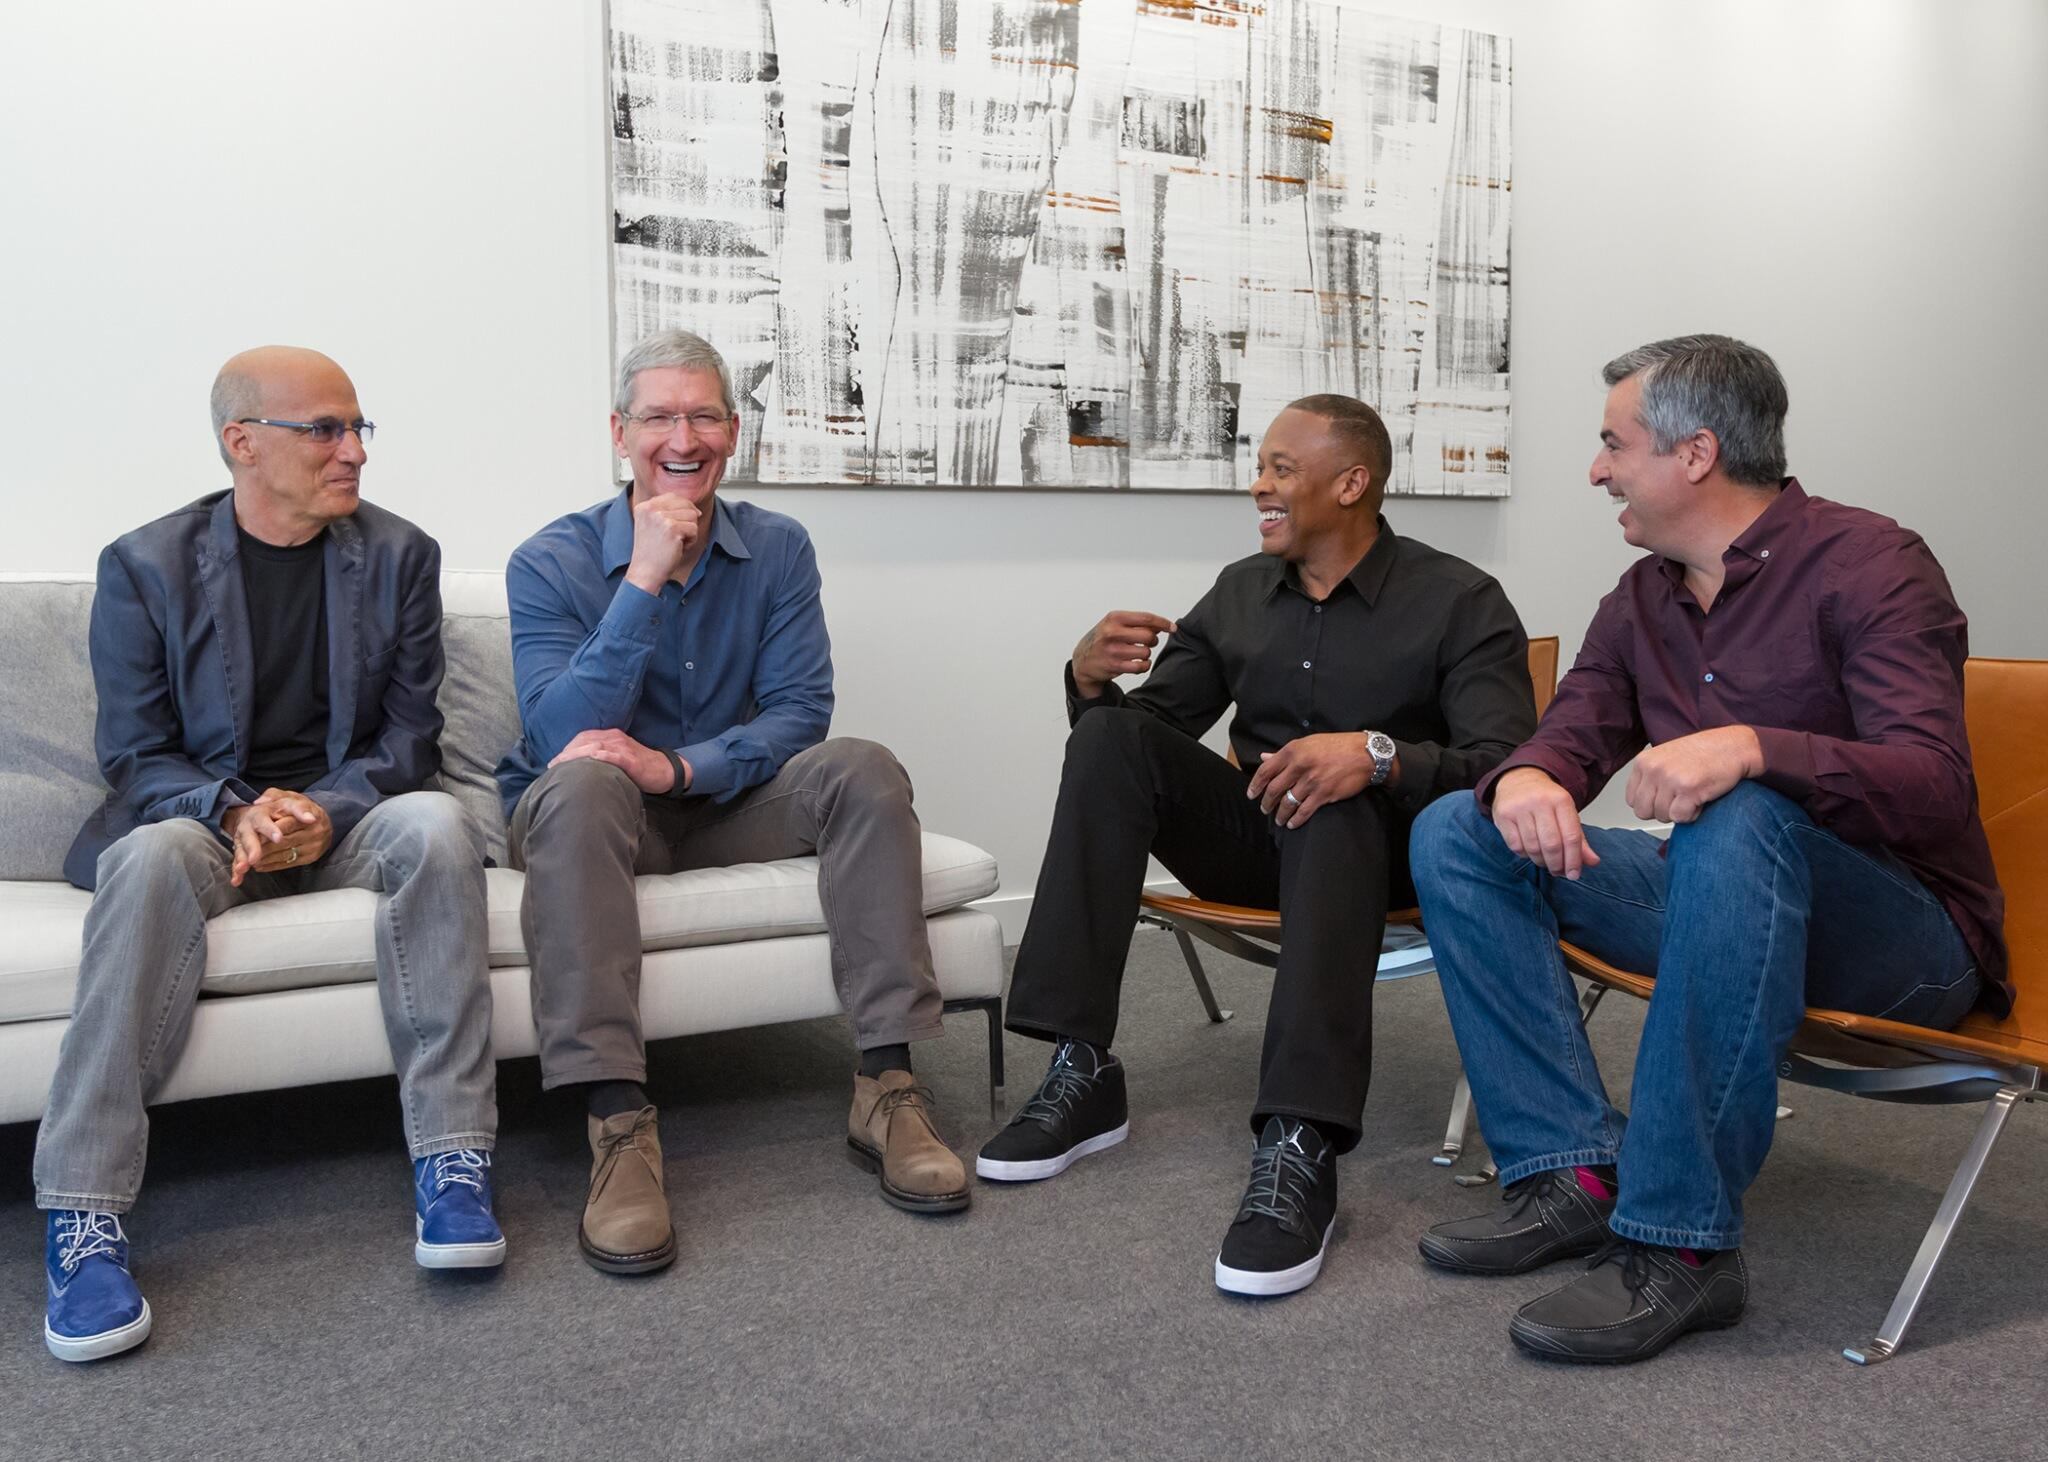 Twitter / tim_cook: Sharing a laugh with Jimmy, ...